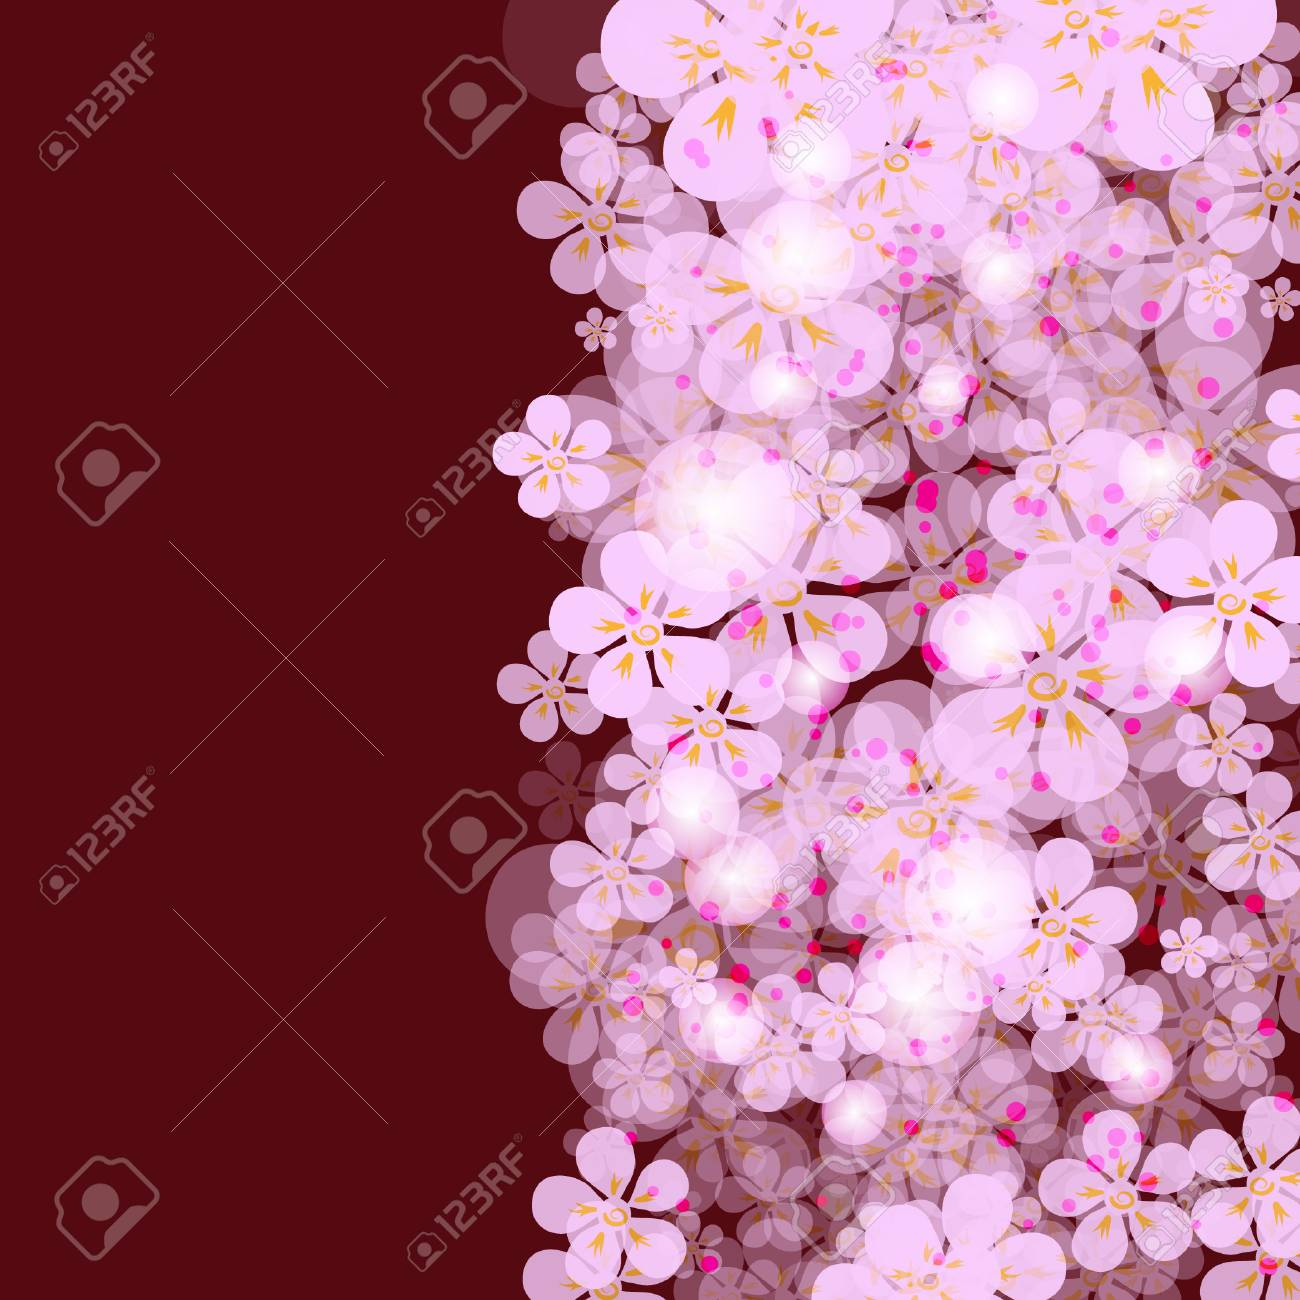 Purple Framework With Gentle Flowers Royalty Free Cliparts, Vectors ...